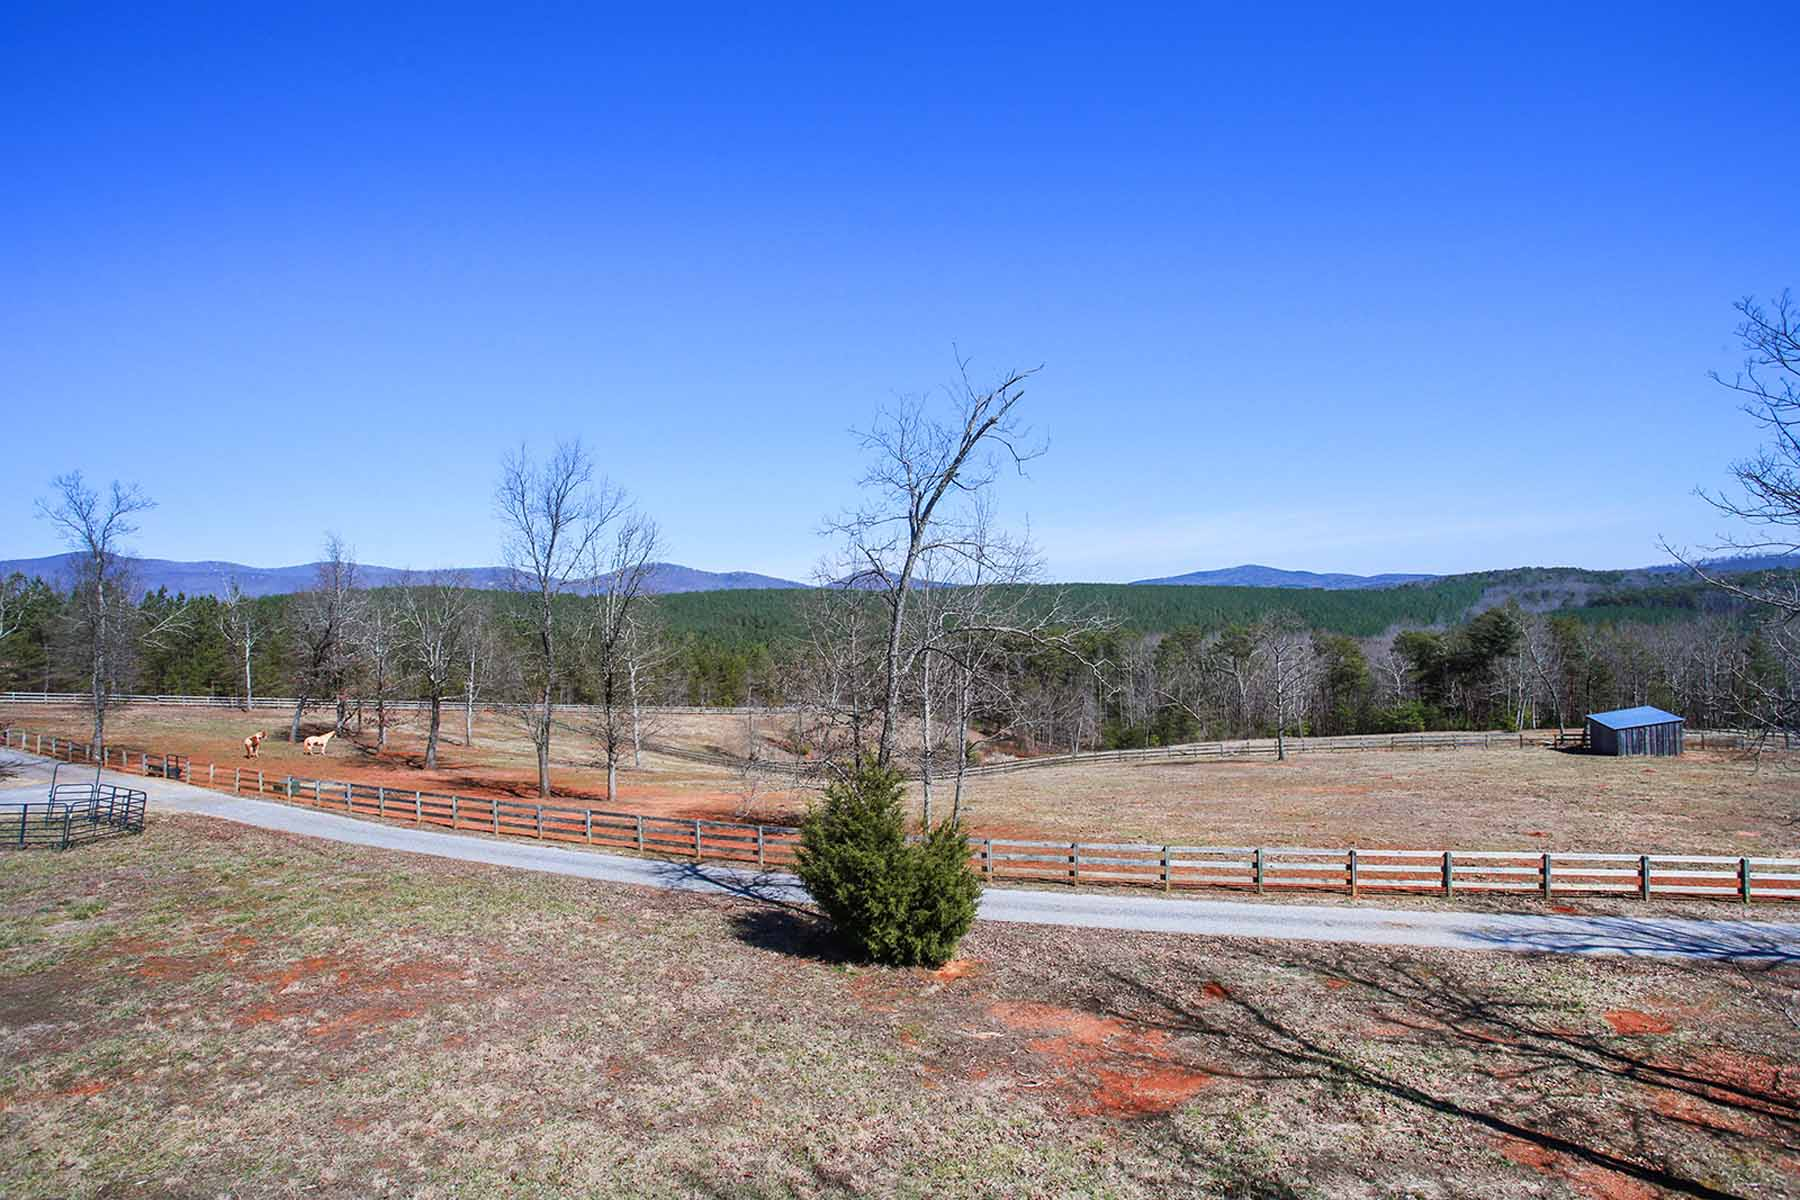 农场 / 牧场 / 种植园 为 销售 在 31+ Acre Working Farm Atop Marble Hill with Panoramic Appalachian Mountain View! 76 Farmhouse Road 鲍尔格朗德, 乔治亚州, 30107 美国